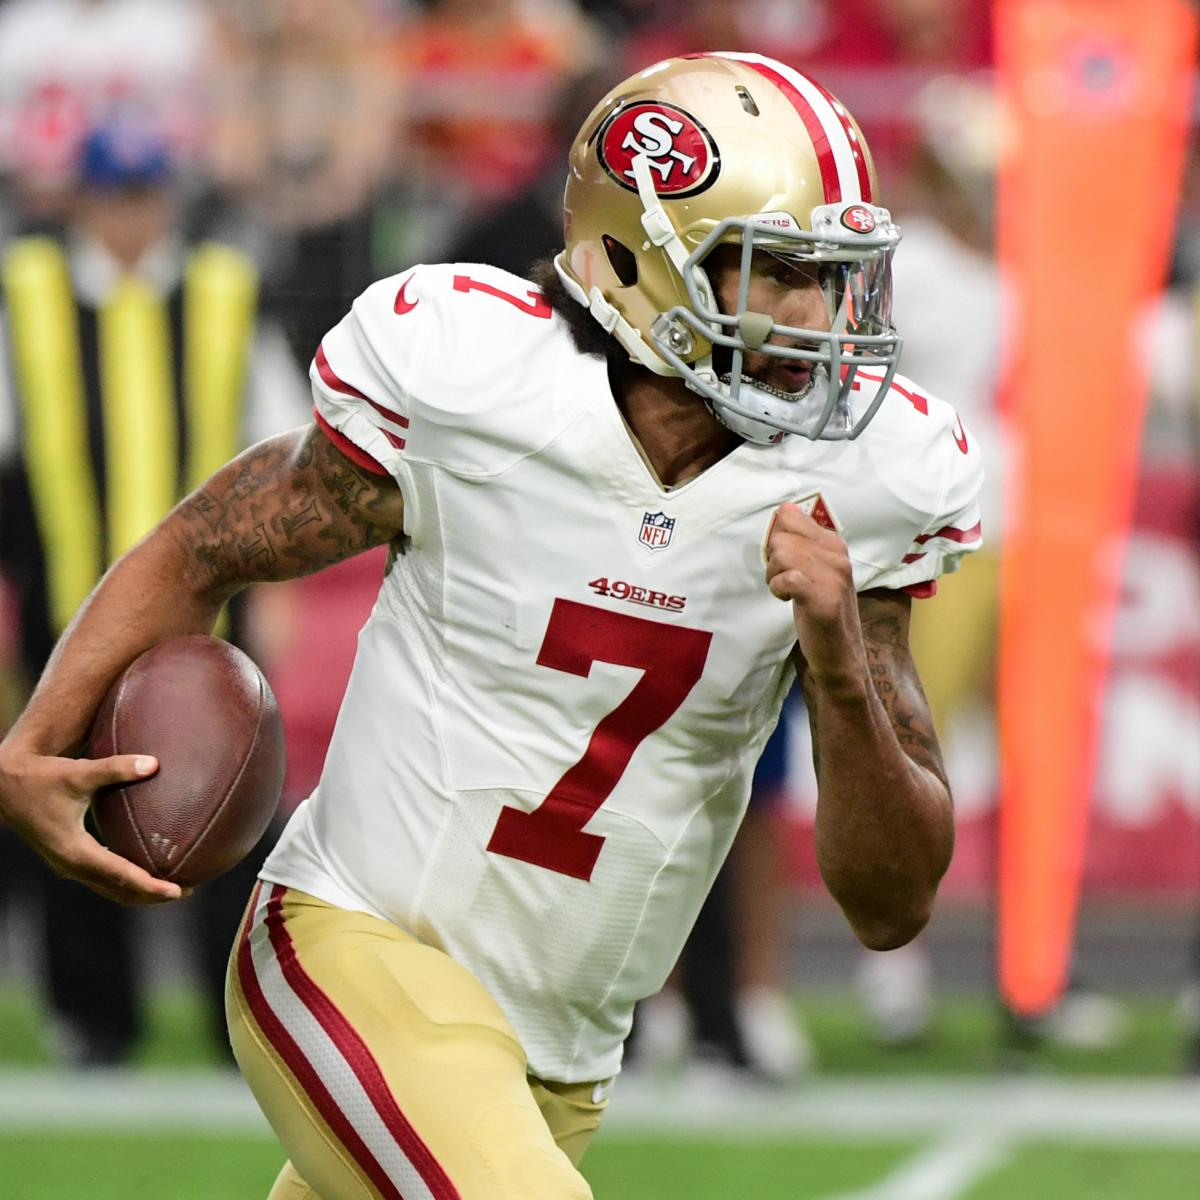 San Diego Chargers Fantasy Football Names: Week 11 Waiver Wire: Colin Kaepernick, Taylor Gabriel